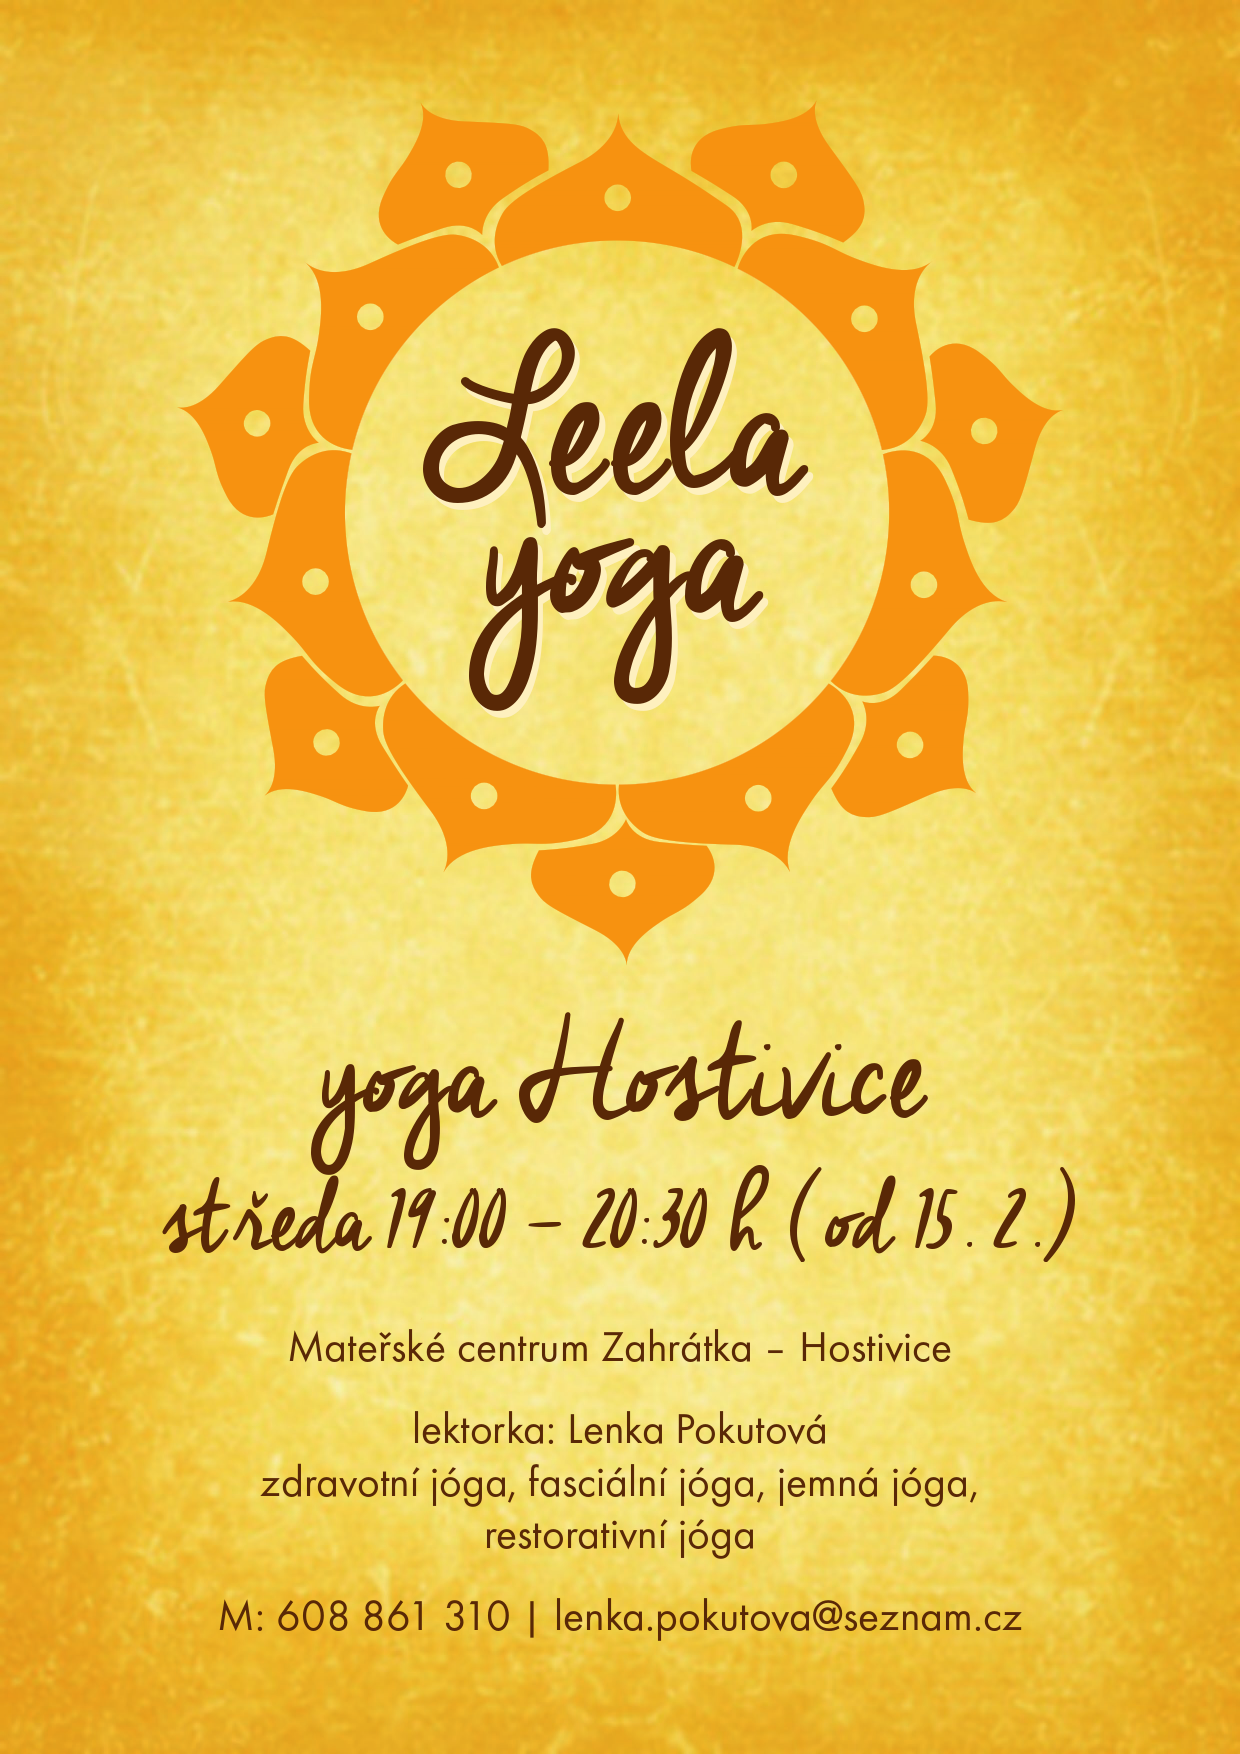 Letacek_yoga_Hostivice.pdf-000001